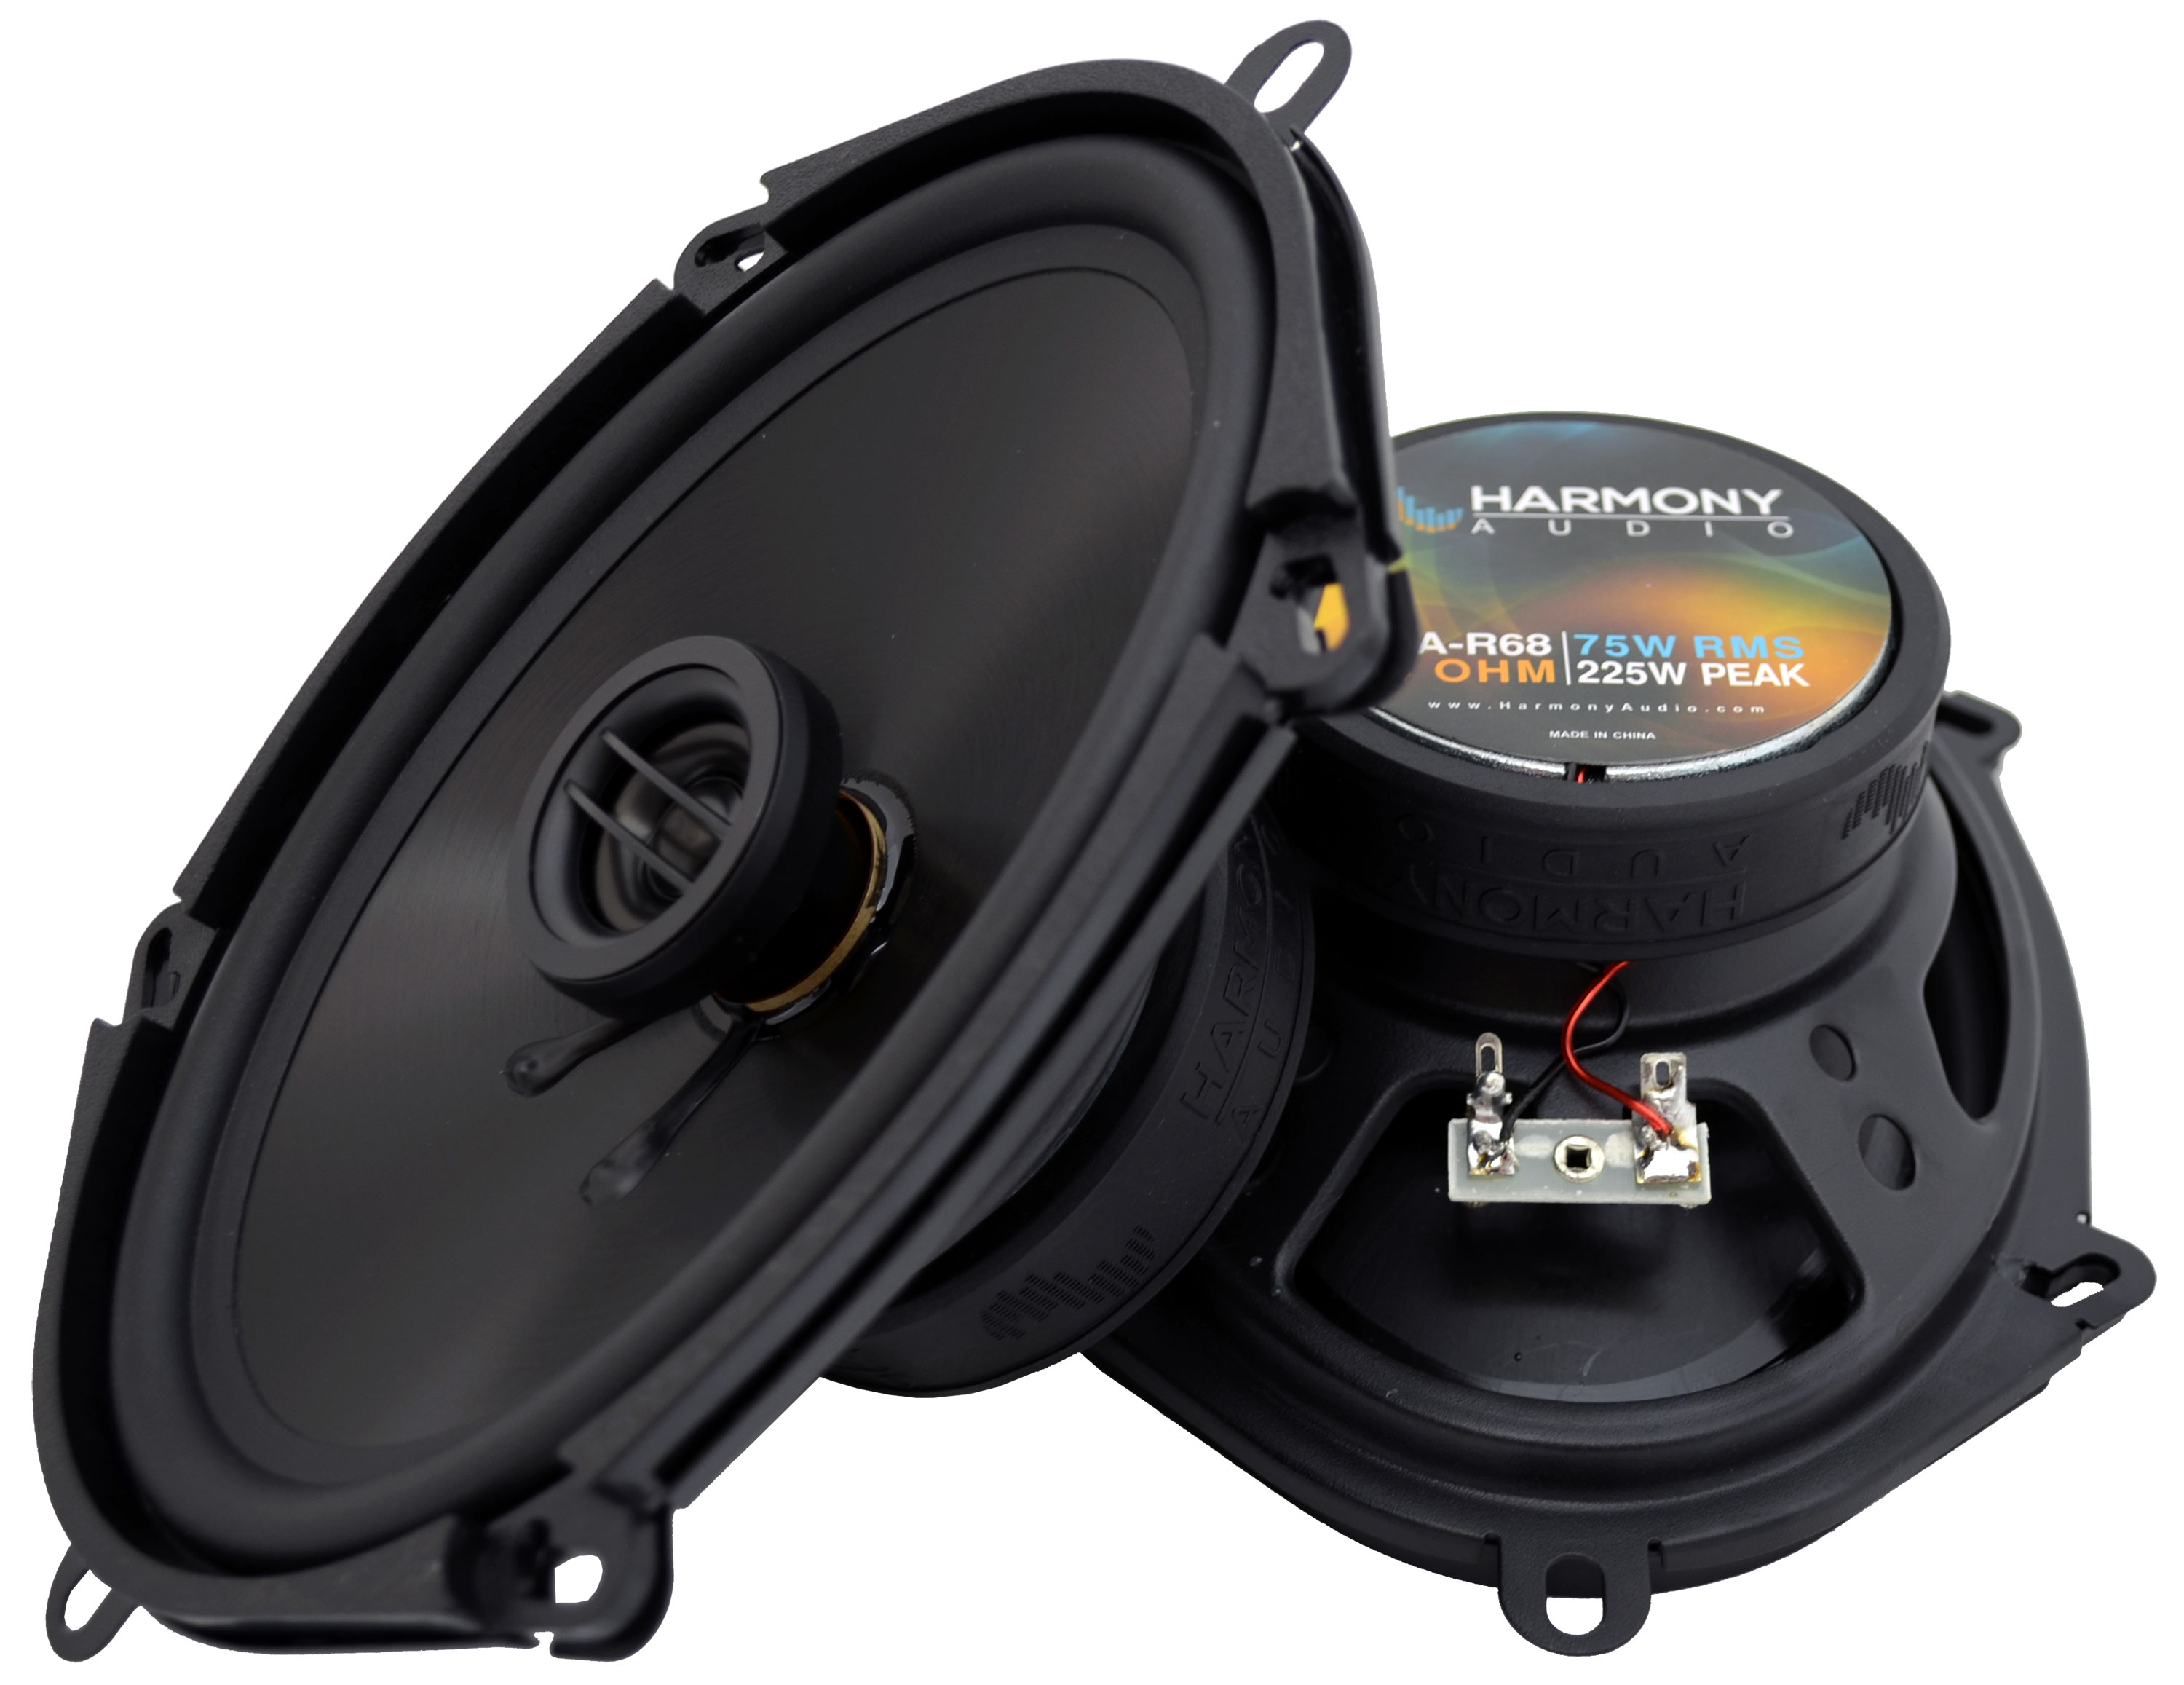 Fits Ford Focus 2008-2011 Front Door Replacement Speaker Harmony HA-R68 Speakers